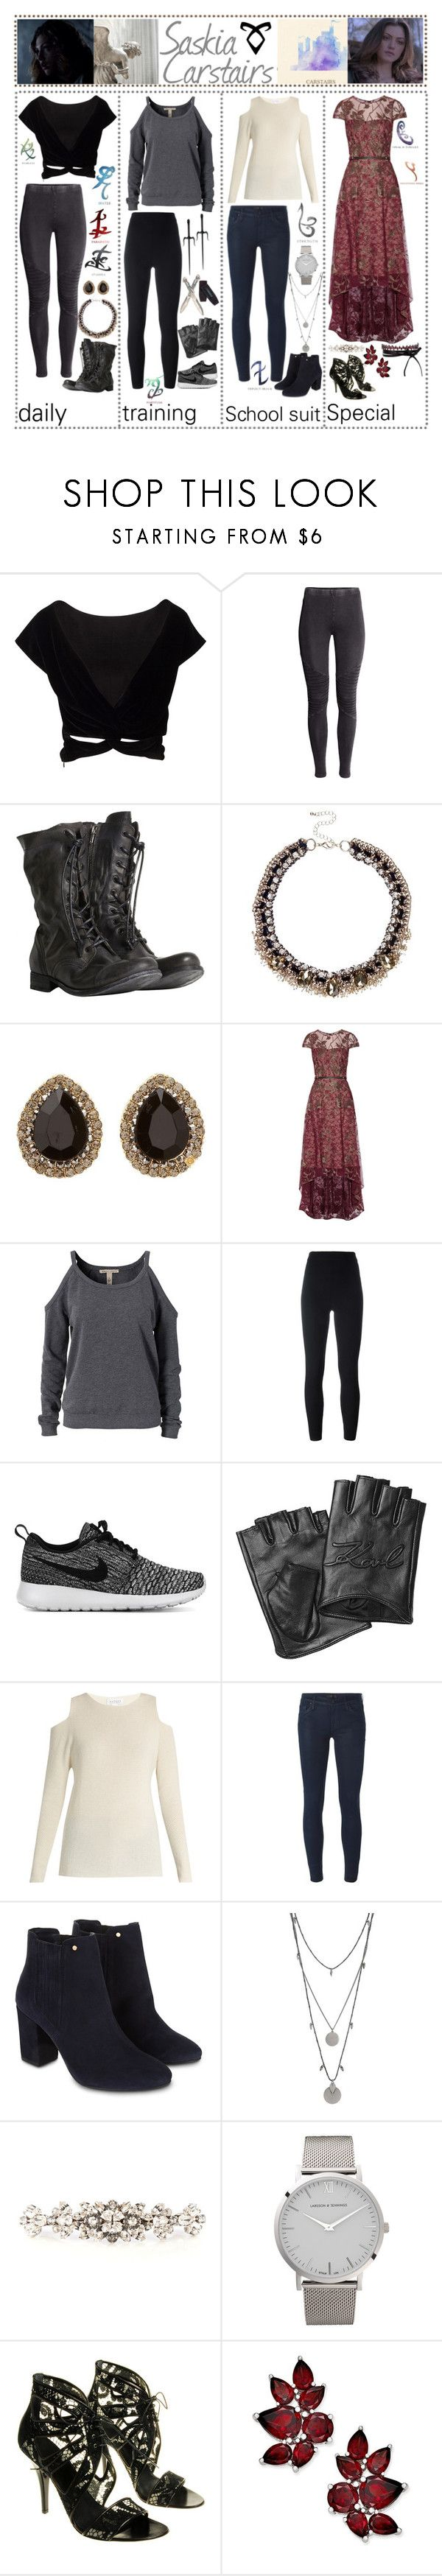 """""""shoutouts for ⚜ idris university ⚜"""" by skyfalll ❤ liked on Polyvore featuring H&M, AllSaints, River Island, Charlotte Russe, Rune NYC, Notte by Marchesa, NLY Trend, Yeezy by Kanye West, NIKE and Karl Lagerfeld"""